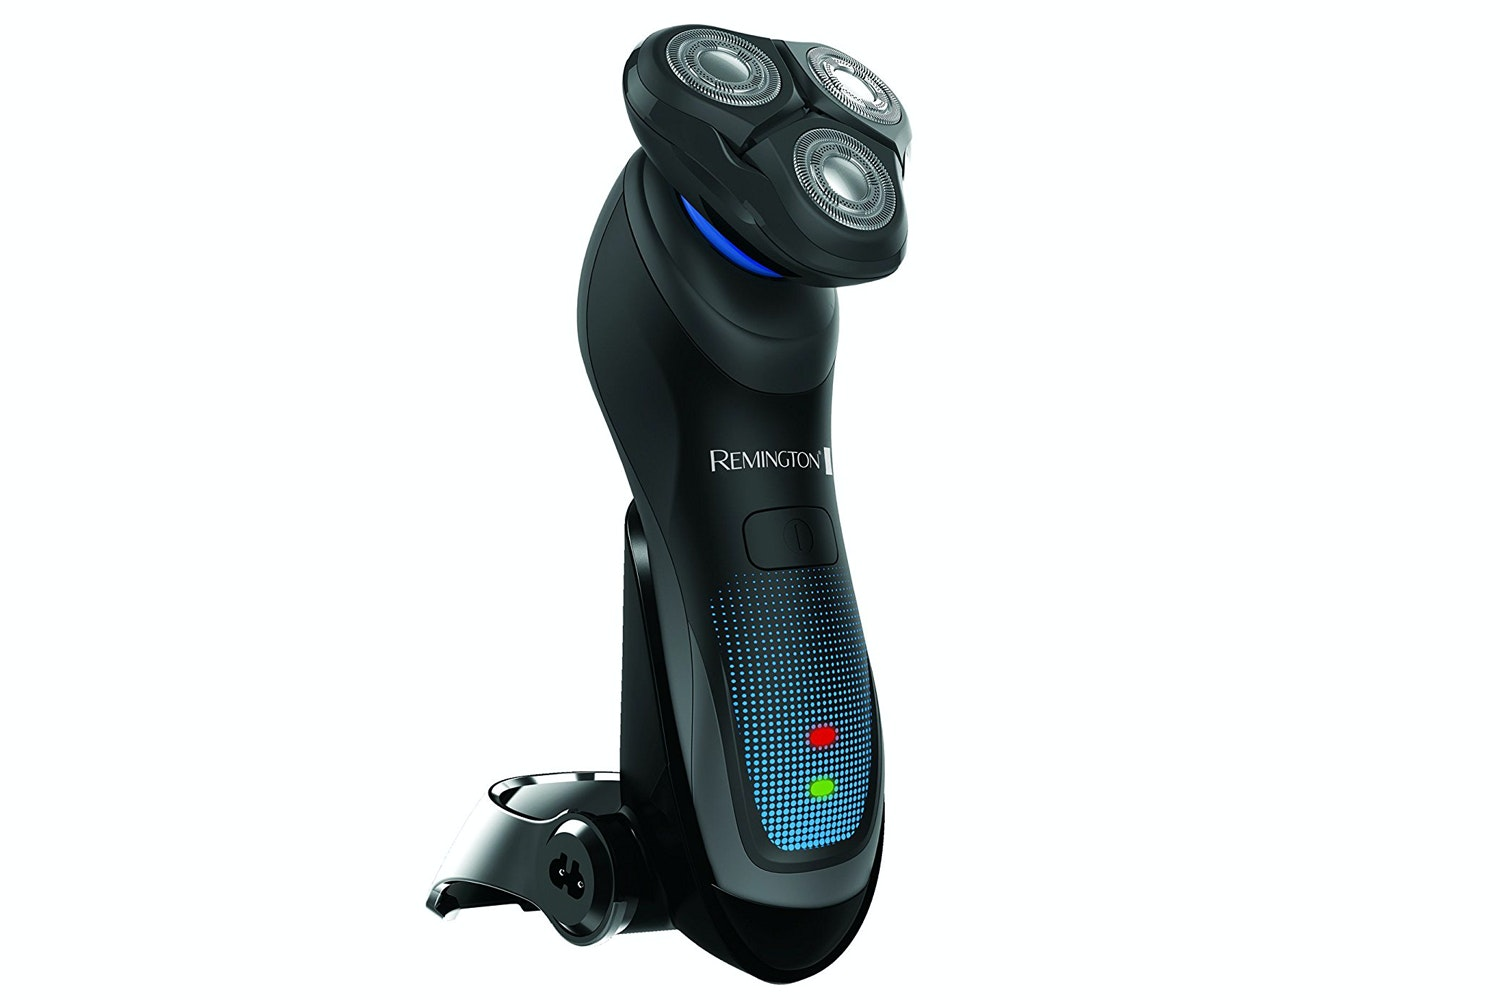 Remington Hyper Flex Aqua Rotary Electric Shaver | XR1430